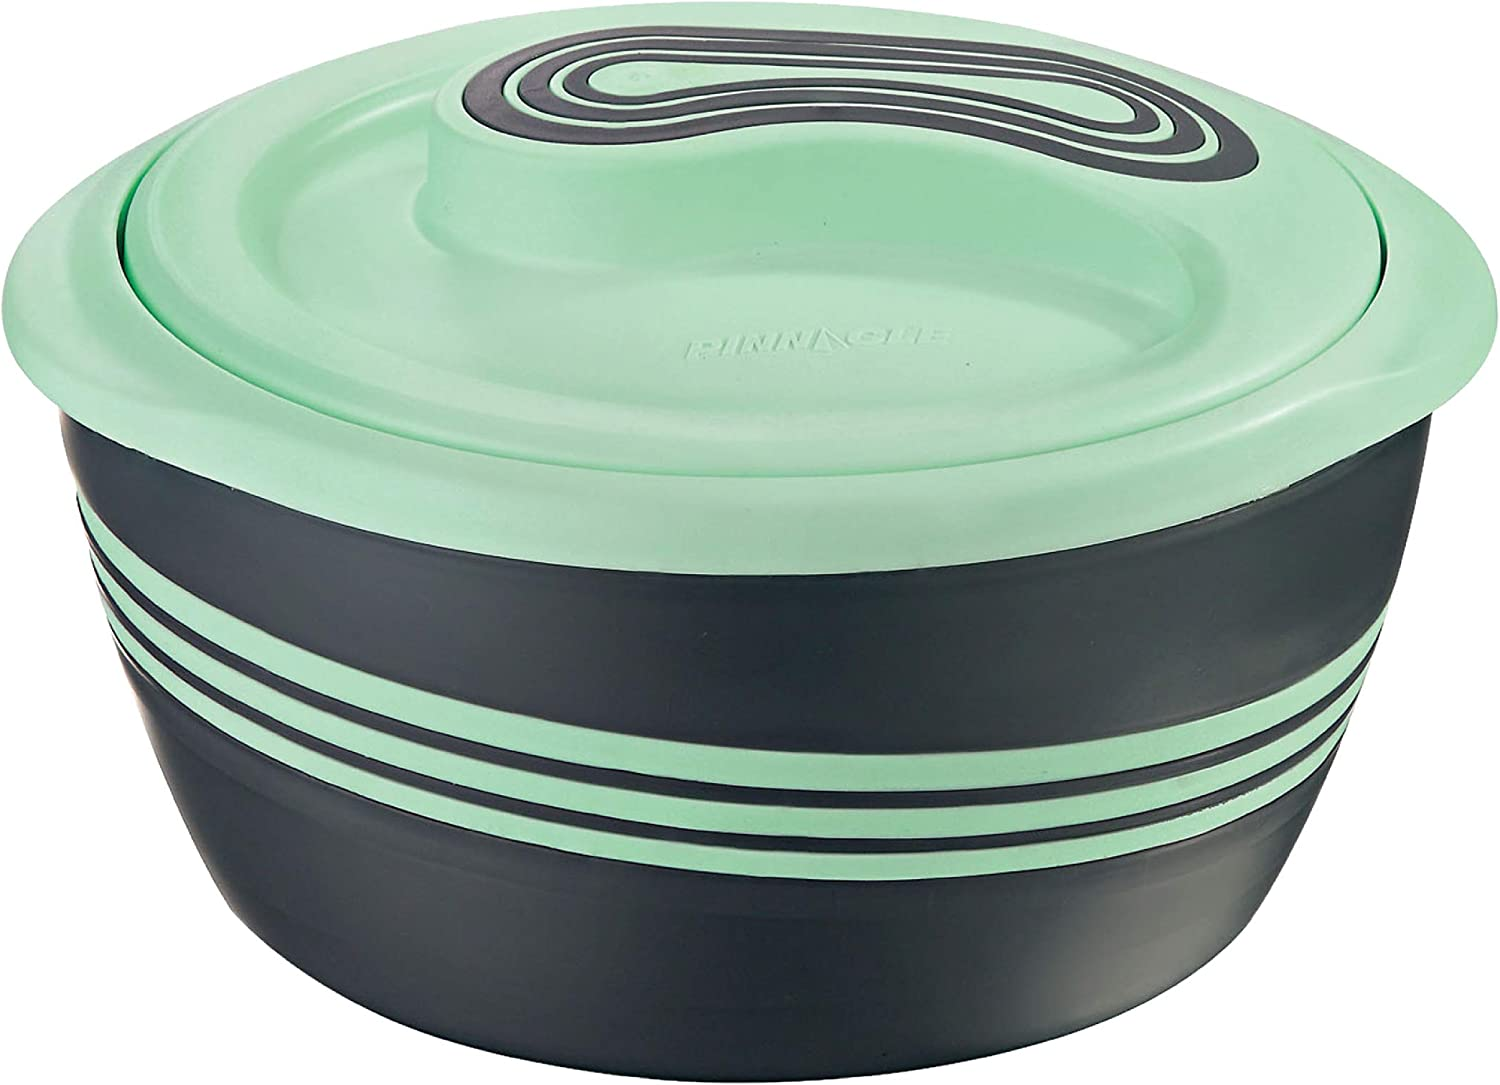 Pinnacle Serving Salad/ Soup Dish Bowl - Thermal Inulated Bowl with Lid - Great Bowl for Holiday, Dinner and Party (3.6 qt Green)